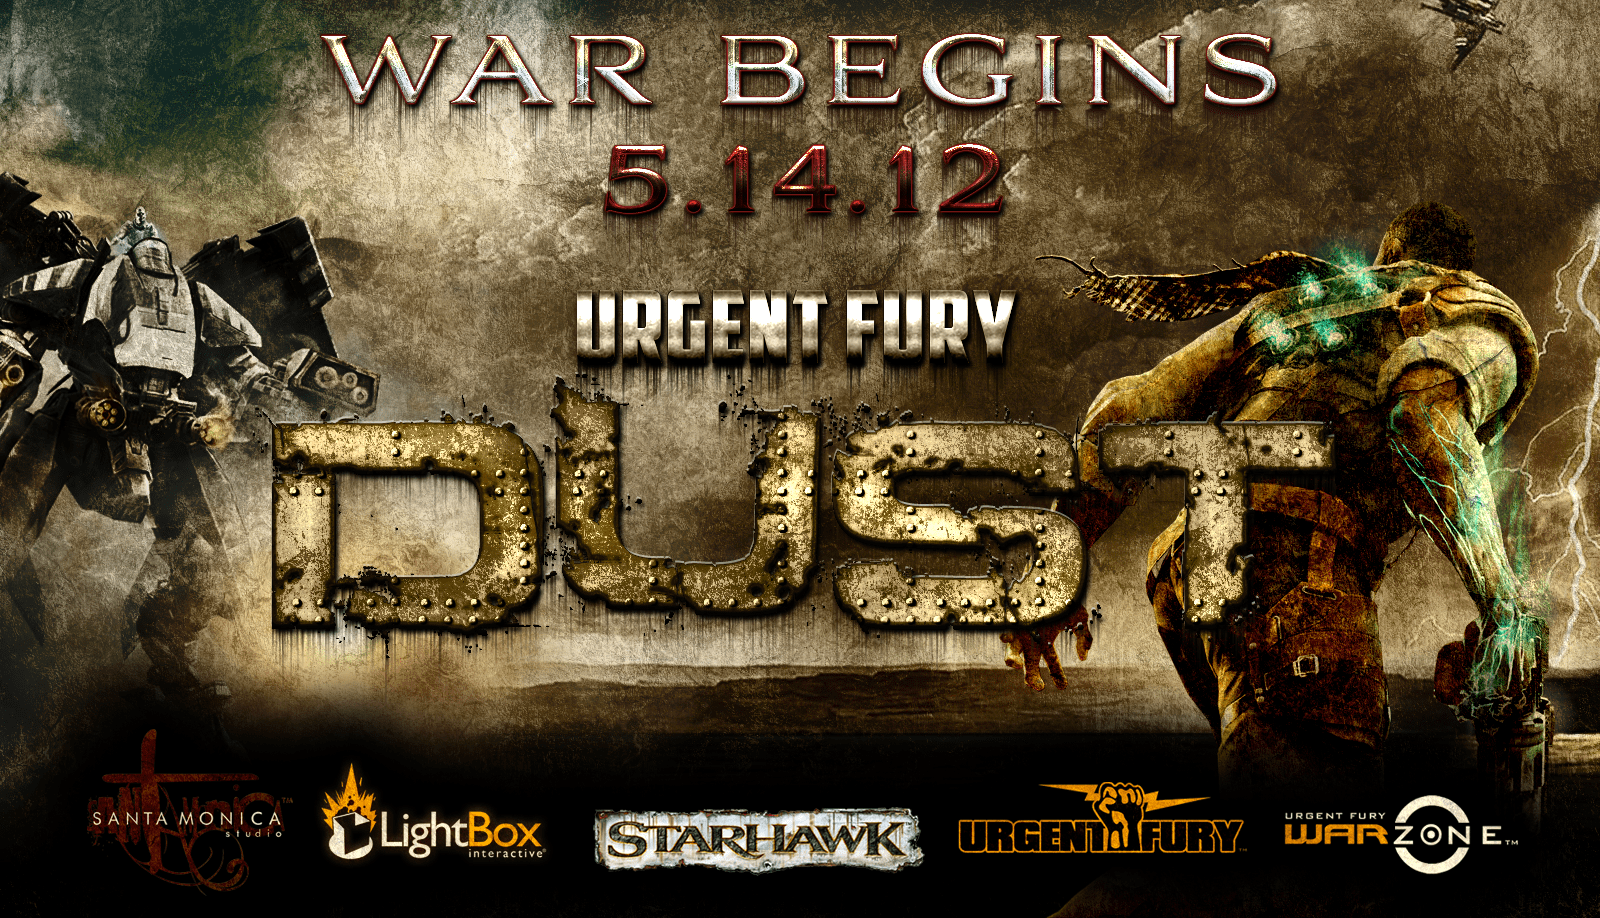 warbeginsad UrgentFury Dust Playstation 3 Tournament | Two Weeks of Starhawk